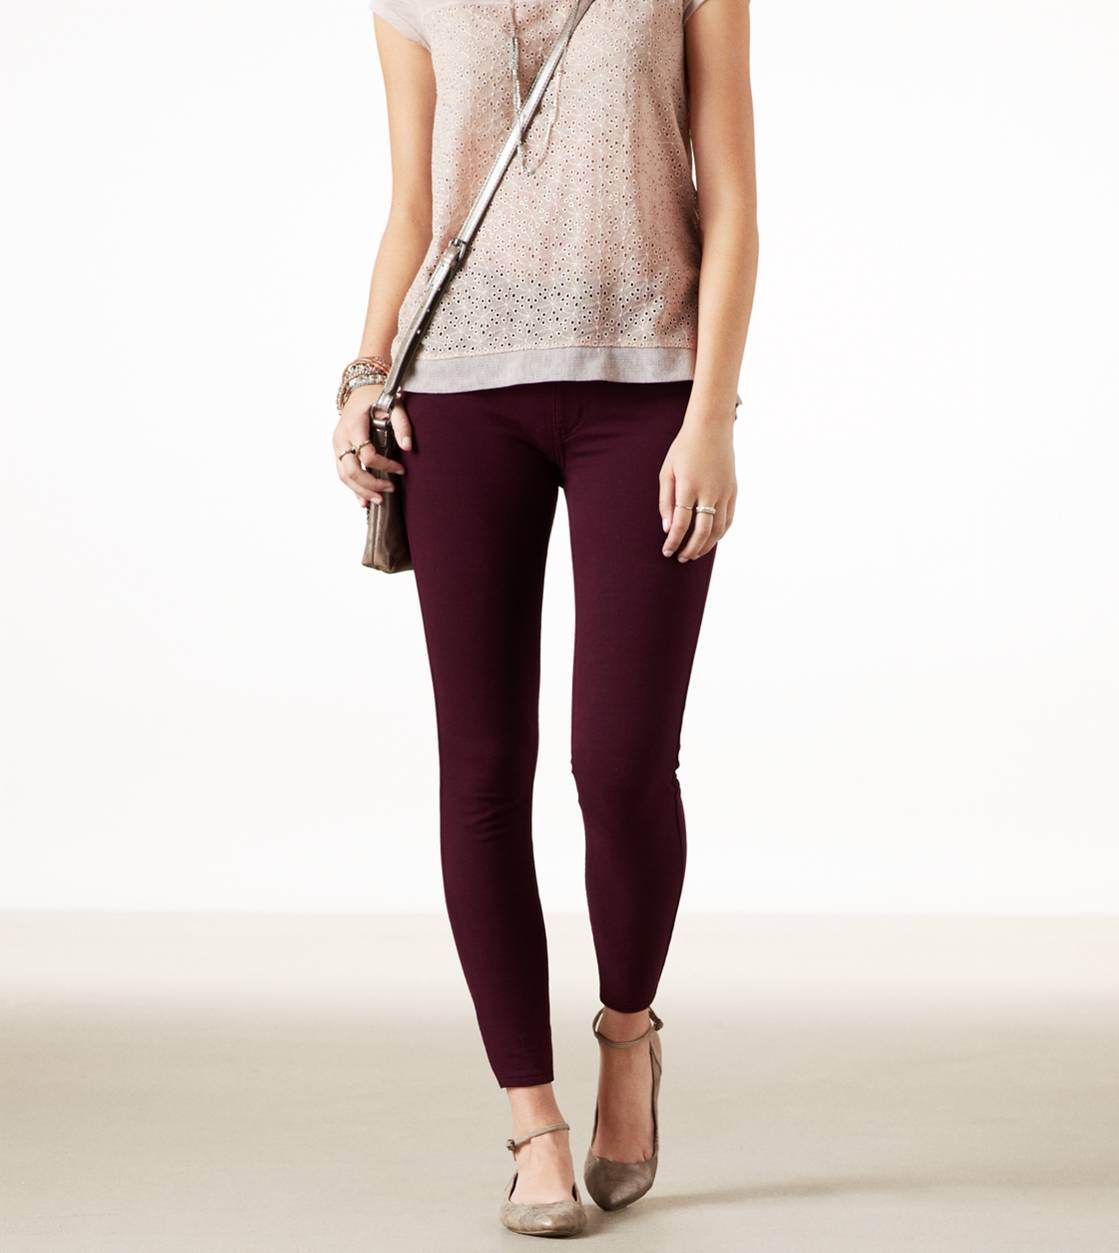 Crushed Berry AE Knit Jegging